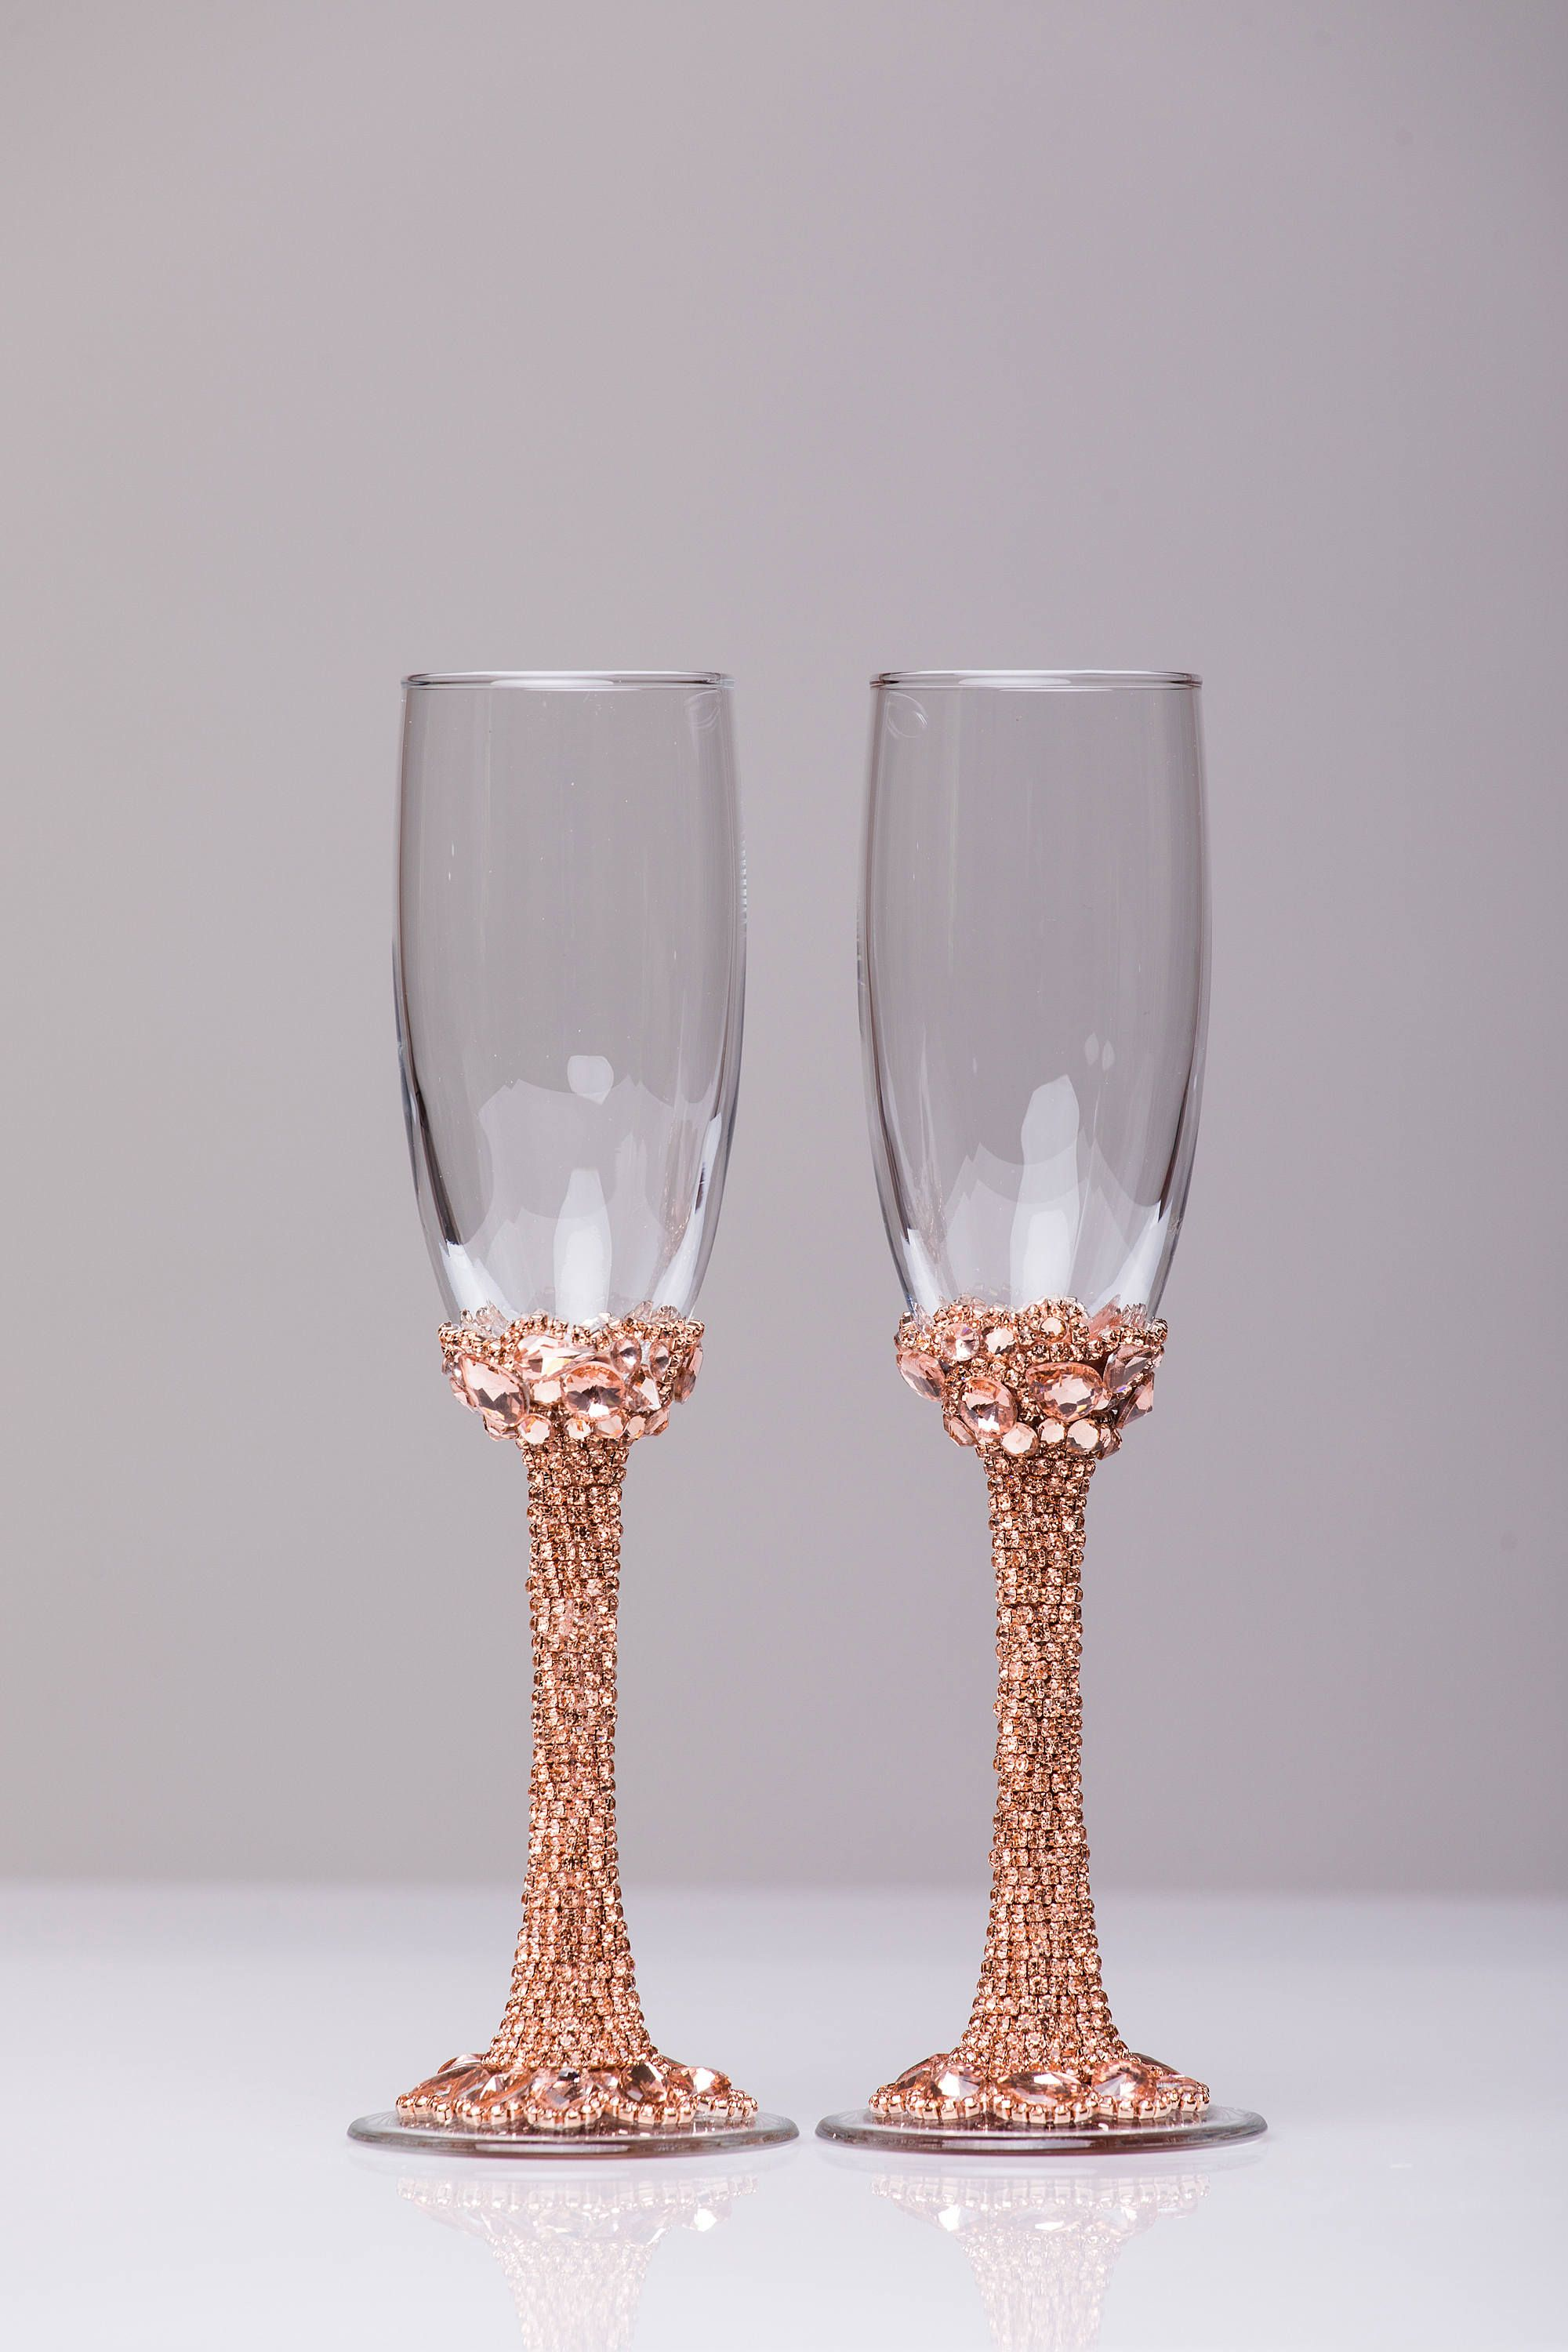 Personalized glasses rose gold Champagne flutes wedding toasting